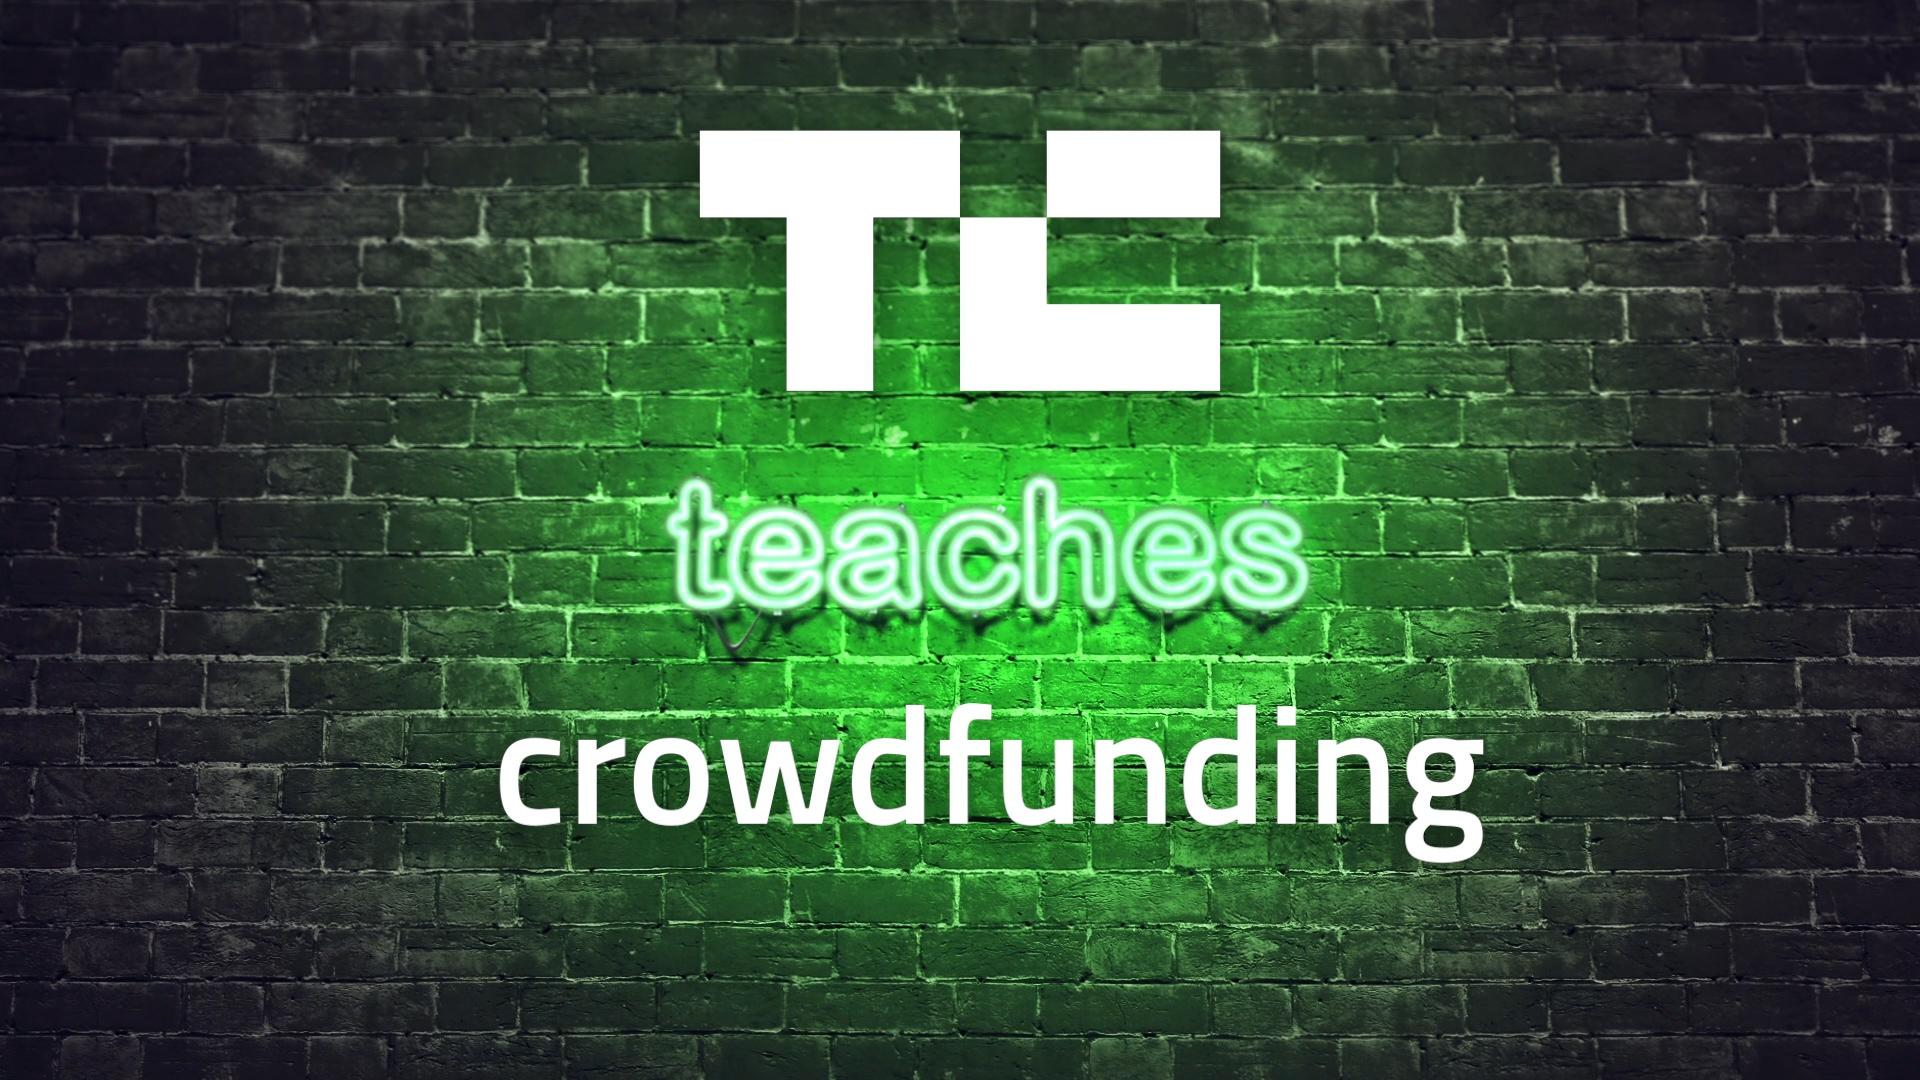 TC Teaches Crowdfunding